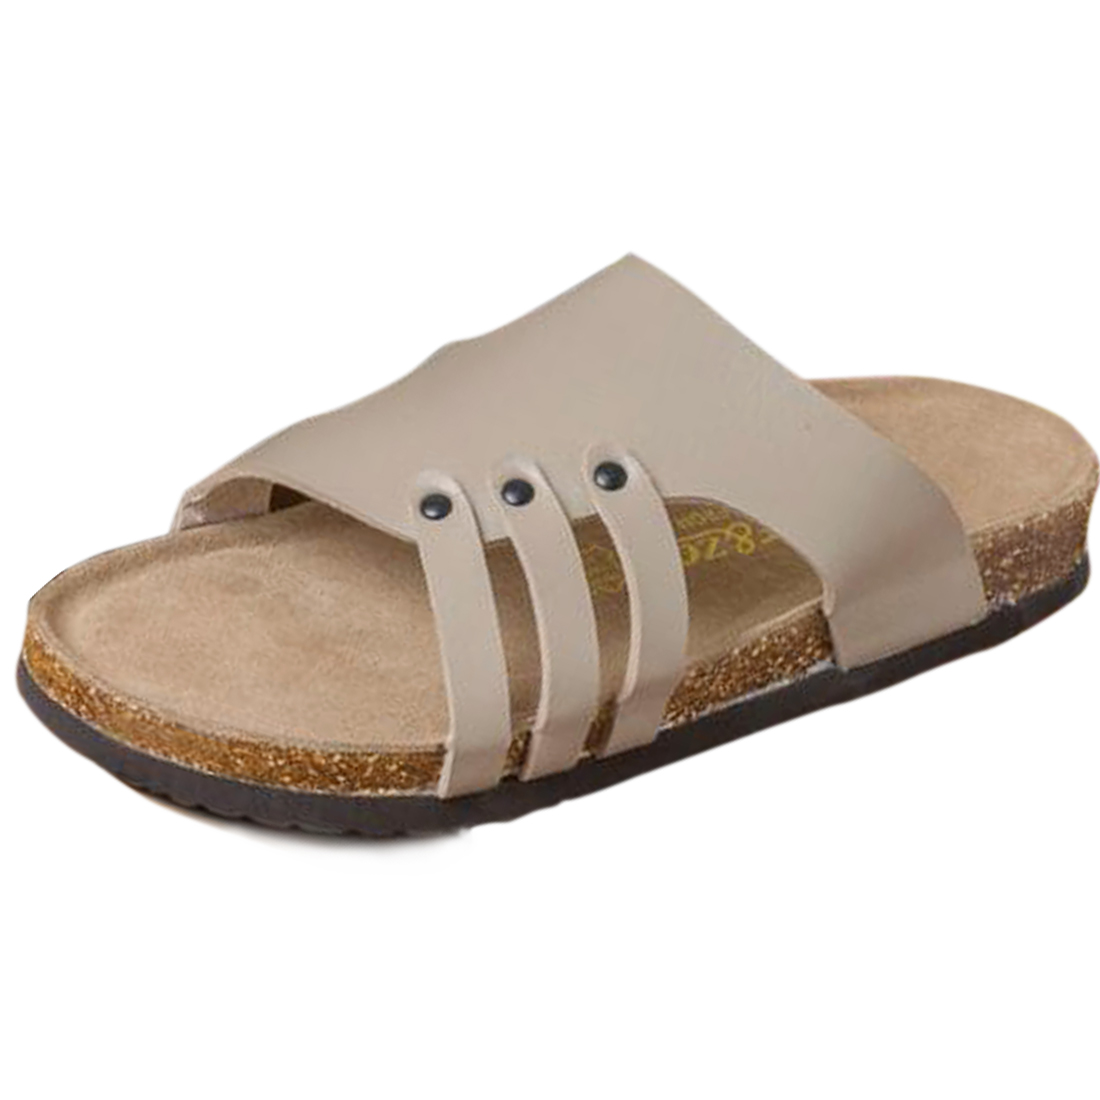 Classic Strap Style Durable Cool Sandal for Men Beige US Size 8